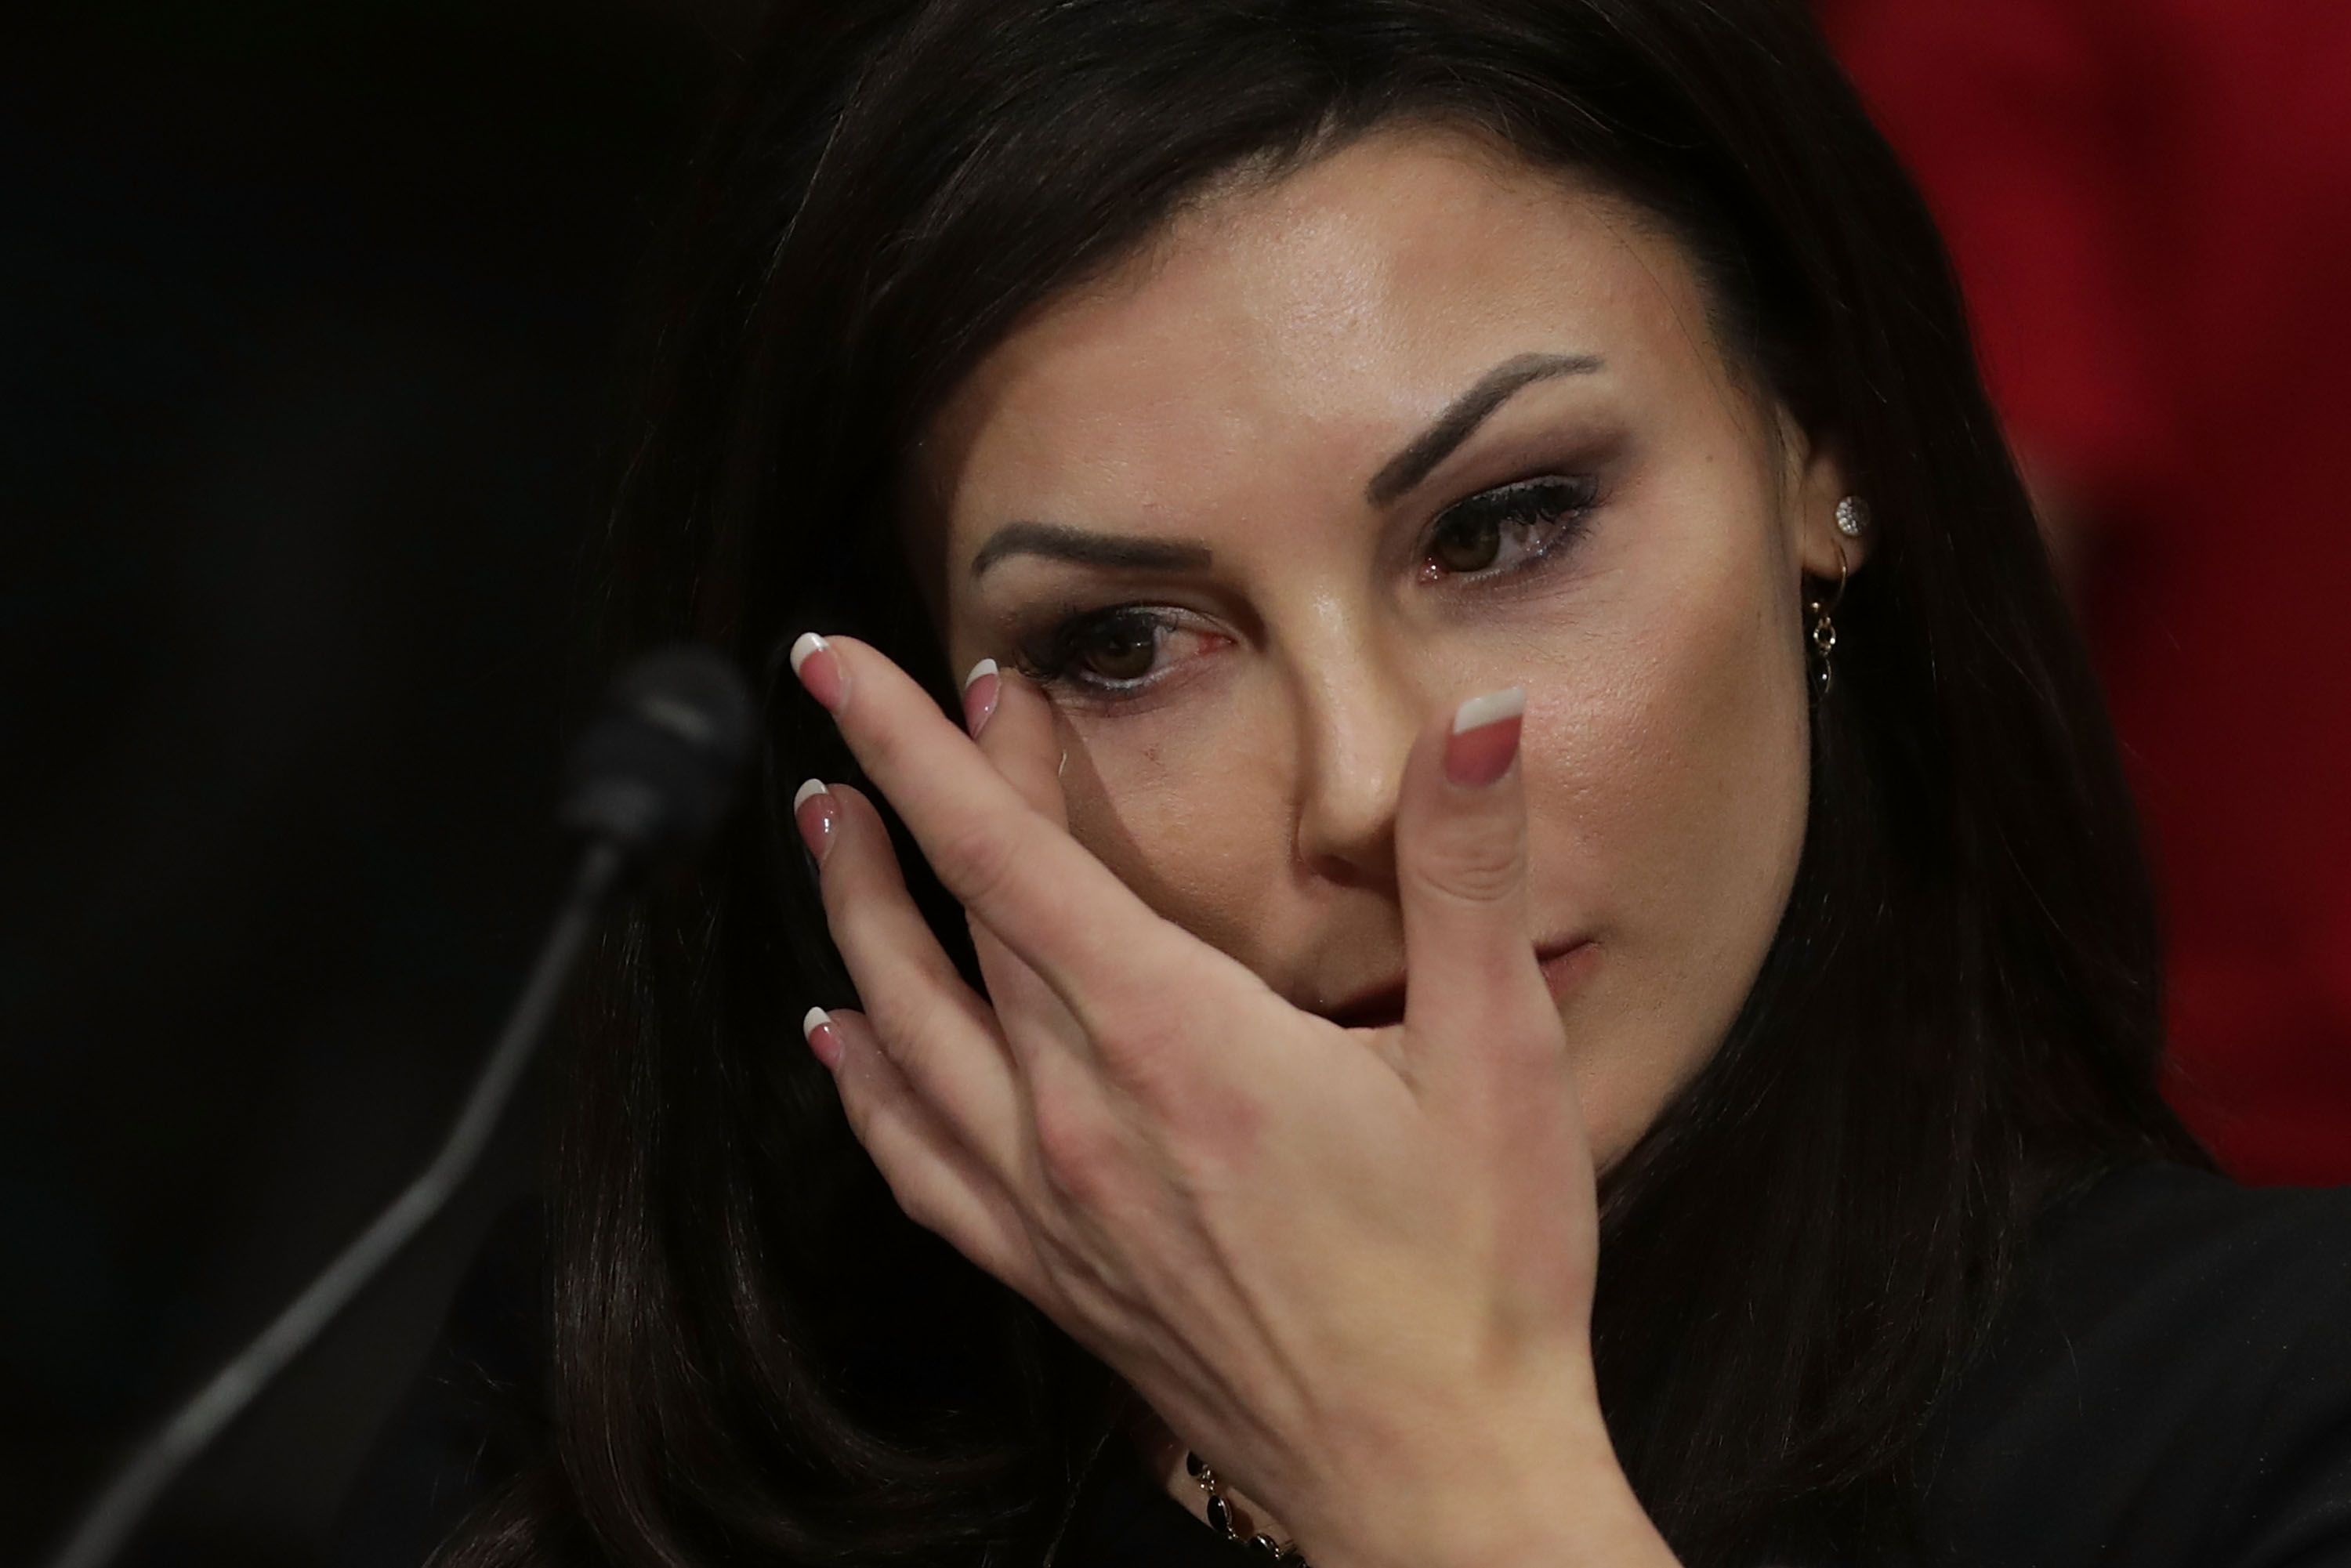 Jamie Dantzscher, former gymnast and 2000 Olympic Bronze Medalist, testified before the Senate Judiciary Committee about her sexual abuse at the hands of a team doctor. (Getty Images)